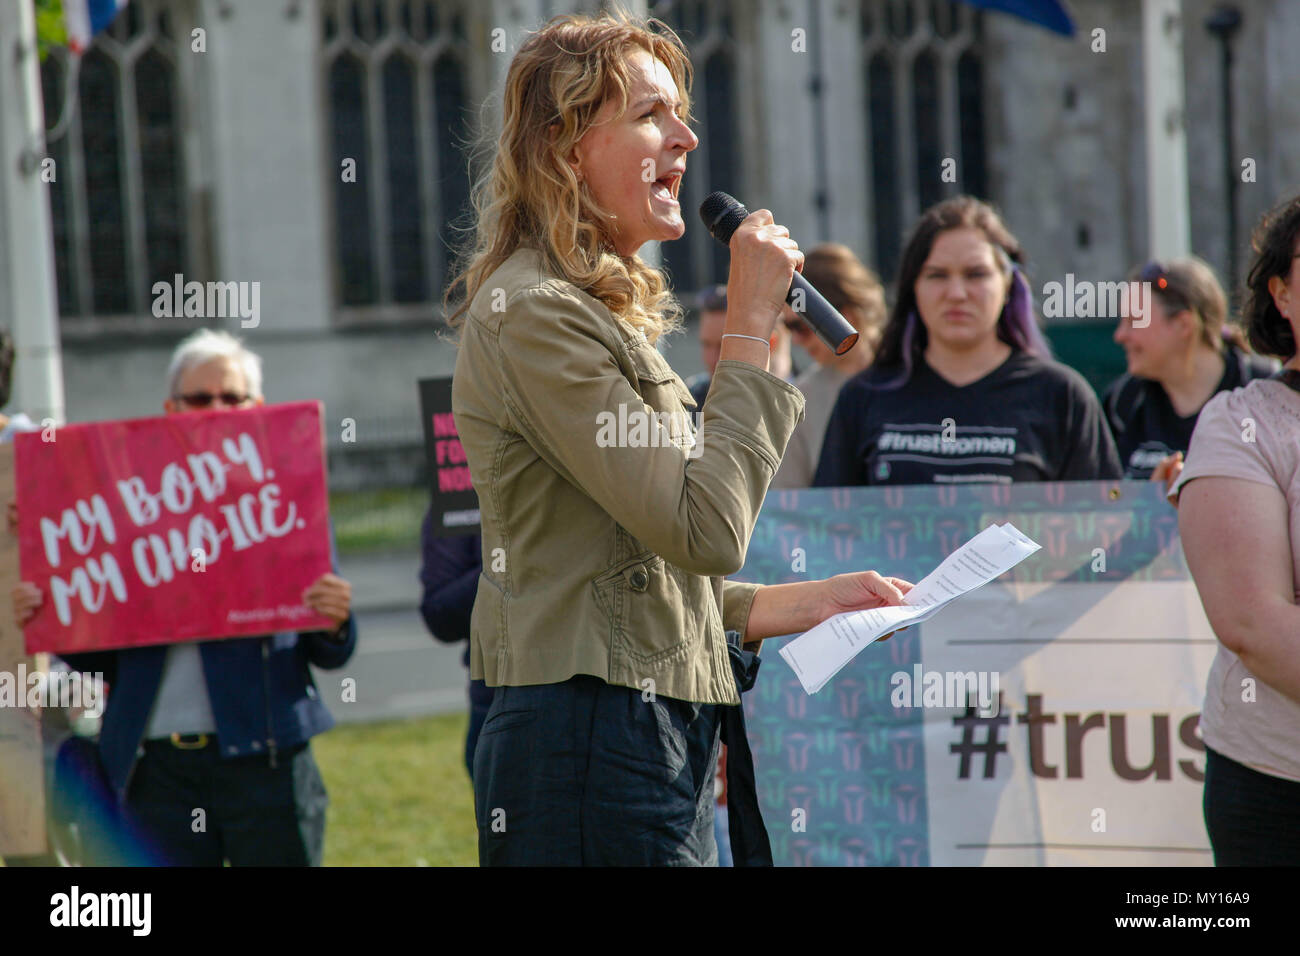 London, UK. 5th June, 2018. Women's Equality Party Leader Sophie Walker at a Protest for Abortion in Northern Ireland Credit: Alex Cavendish/Alamy Live News Stock Photo